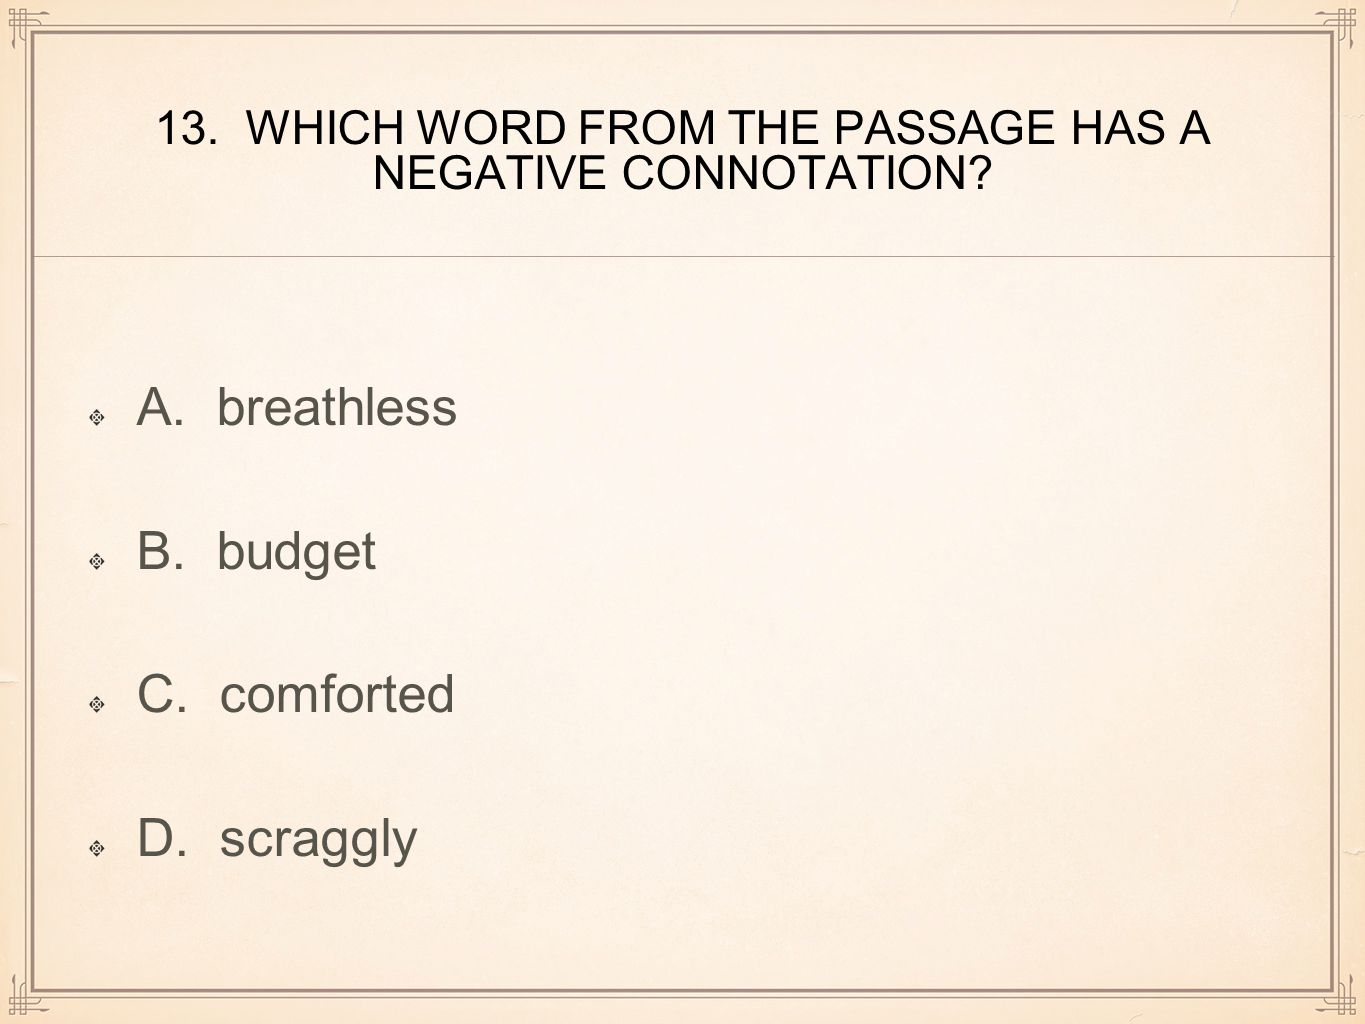 13. WHICH WORD FROM THE PASSAGE HAS A NEGATIVE CONNOTATION? A. breathless B. budget C. comforted D. scraggly